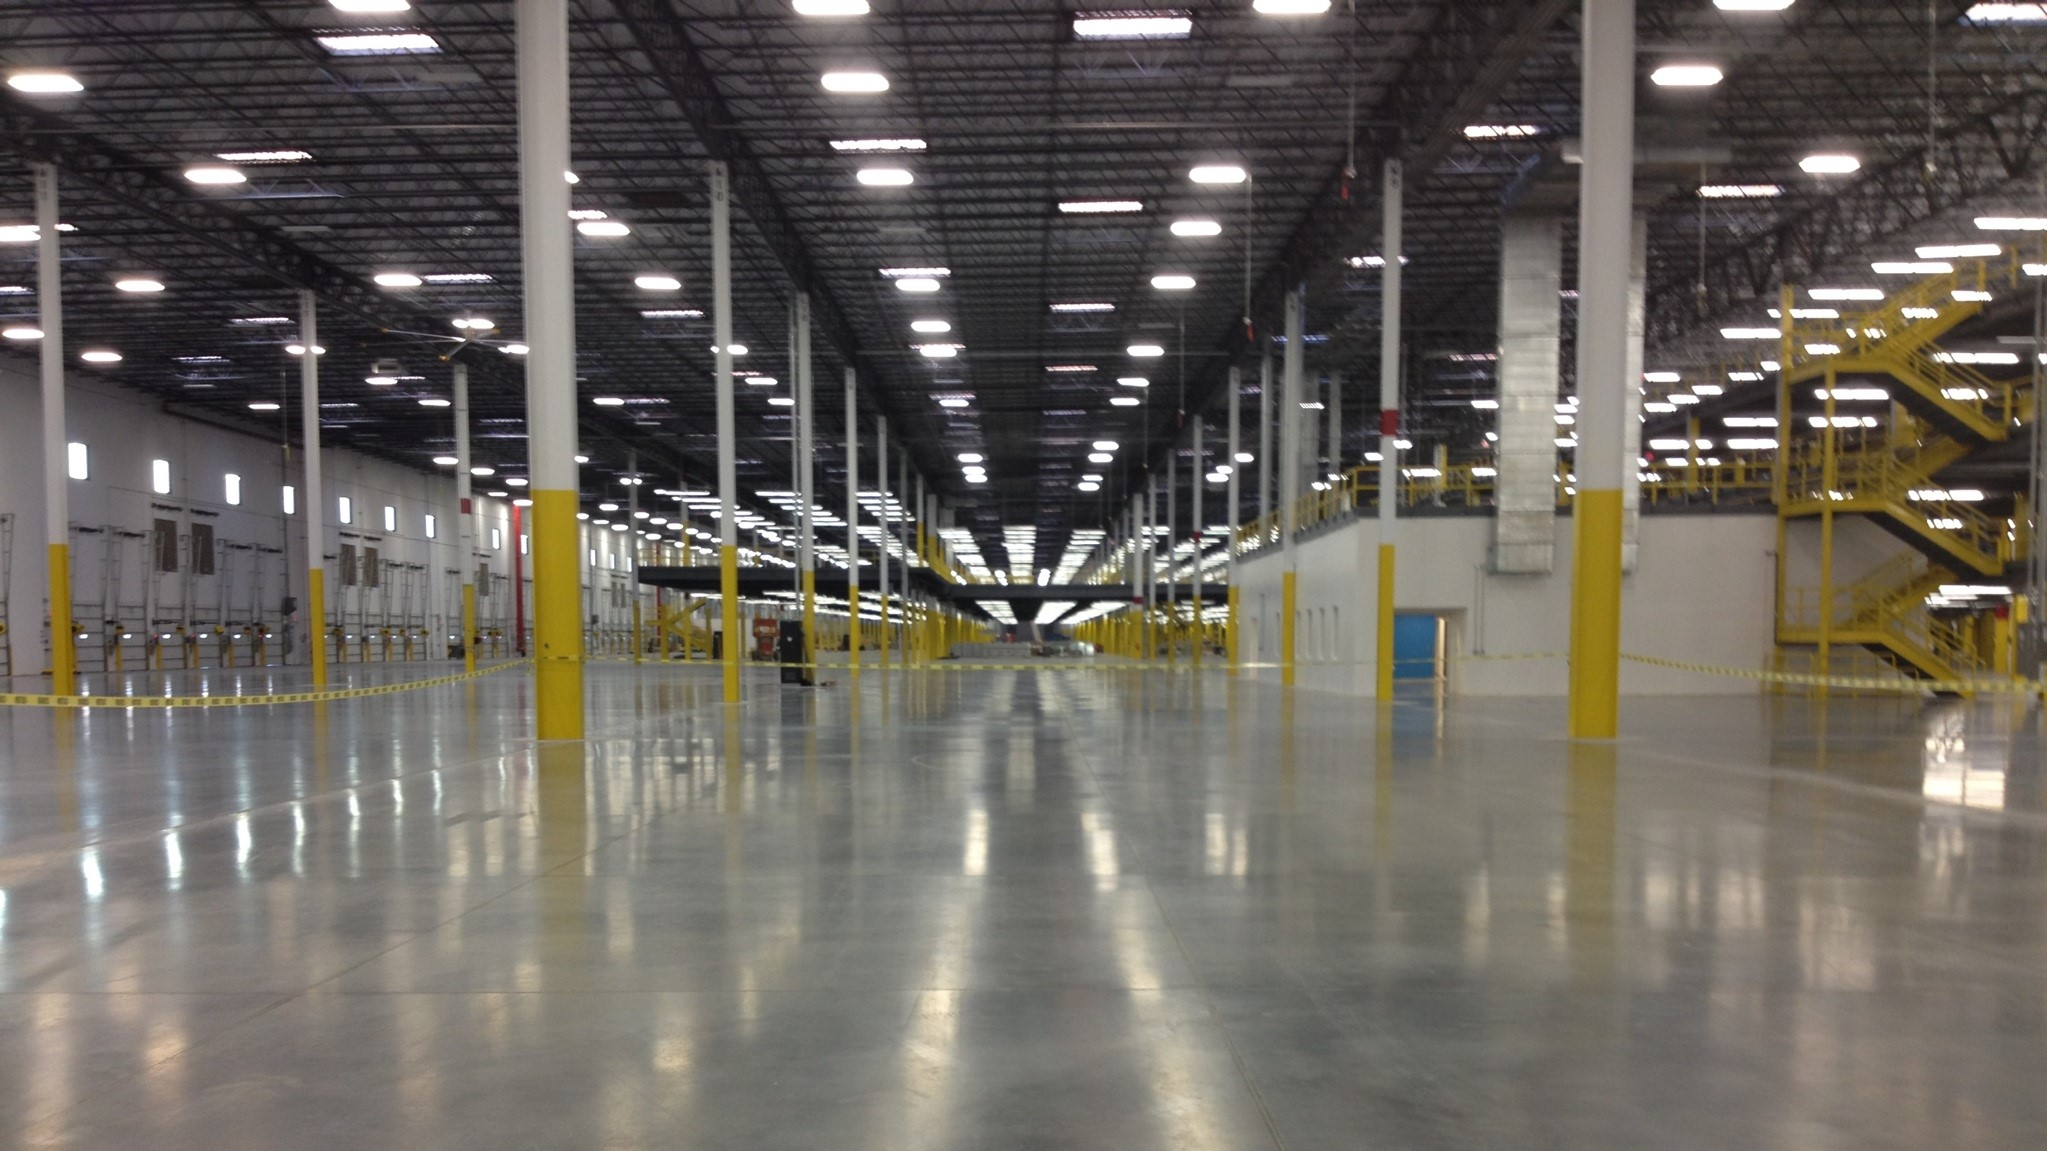 Amazon Fulfillment Center | Hillis-Carnes